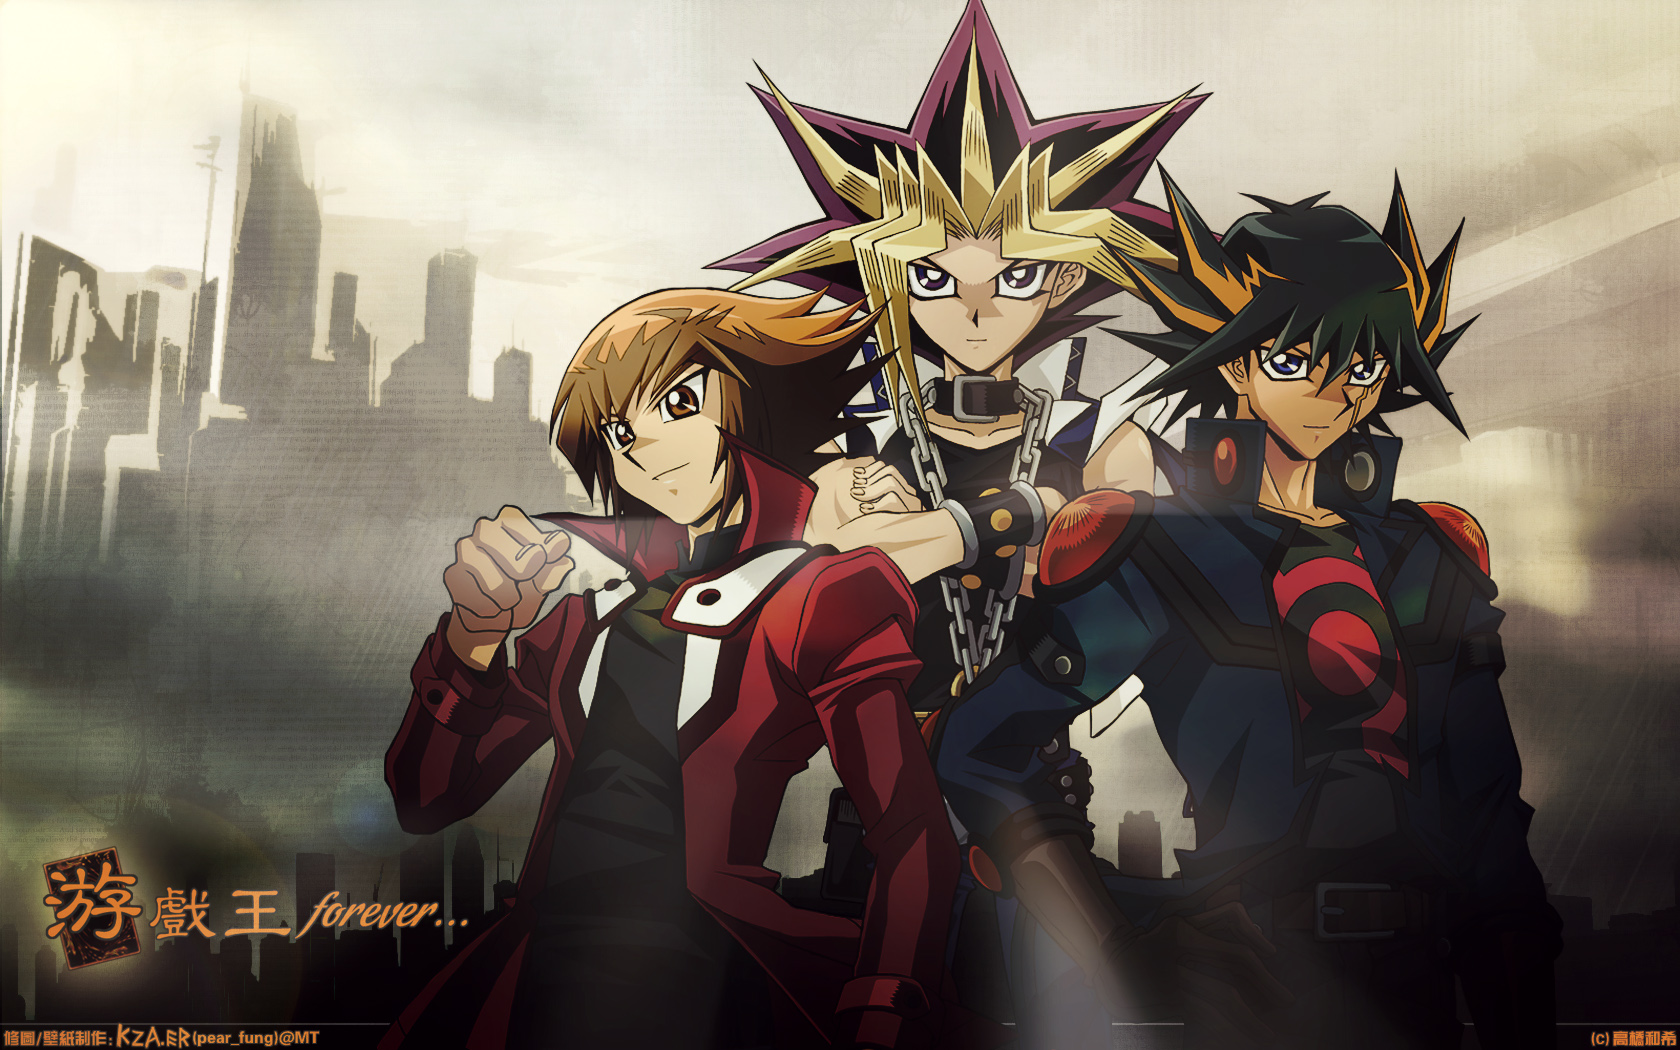 Free Download Image For Yugioh Wallpaper Hd 1680x1050 For